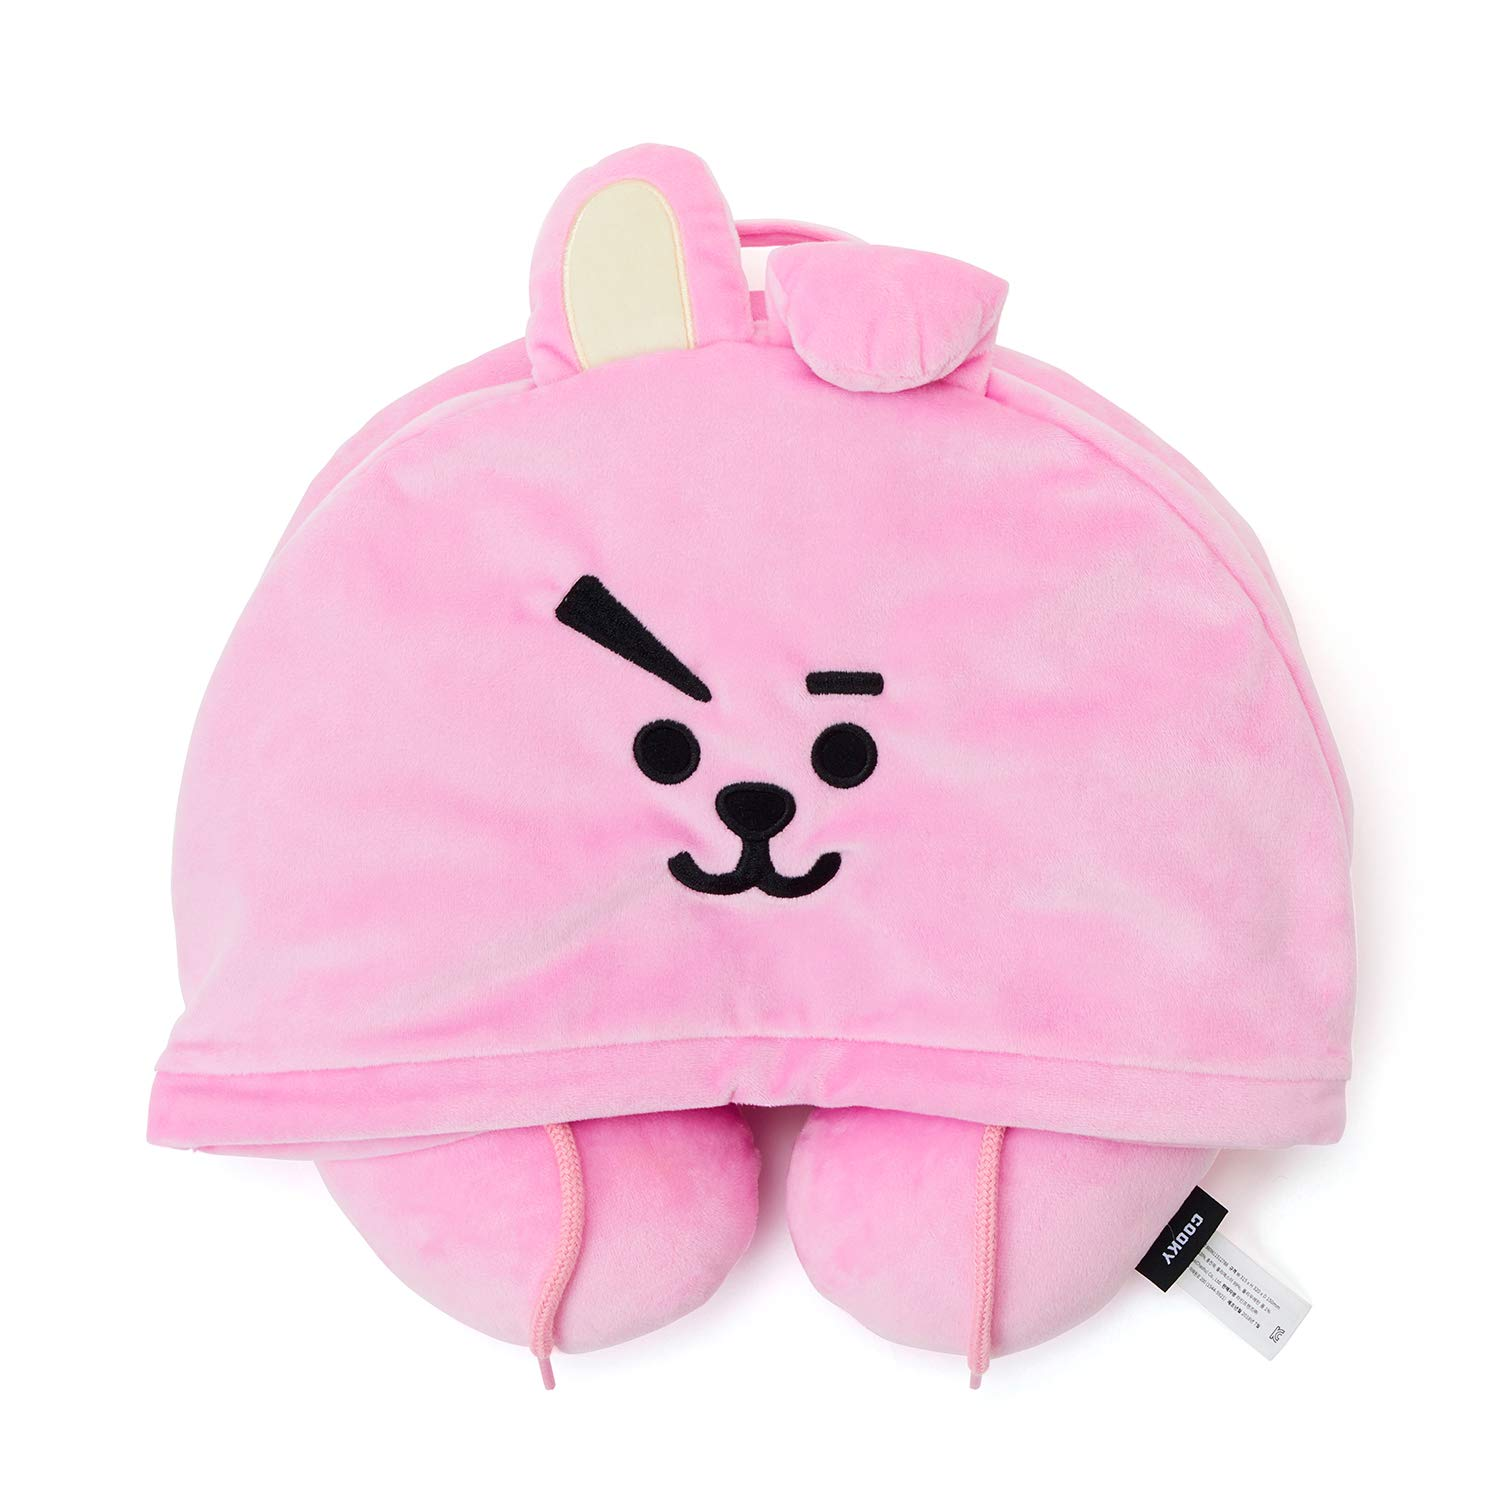 BT21 Official Merchandise by Line Friends - Cooky Character Hooded Travel Neck Pillow, Pink by BT21